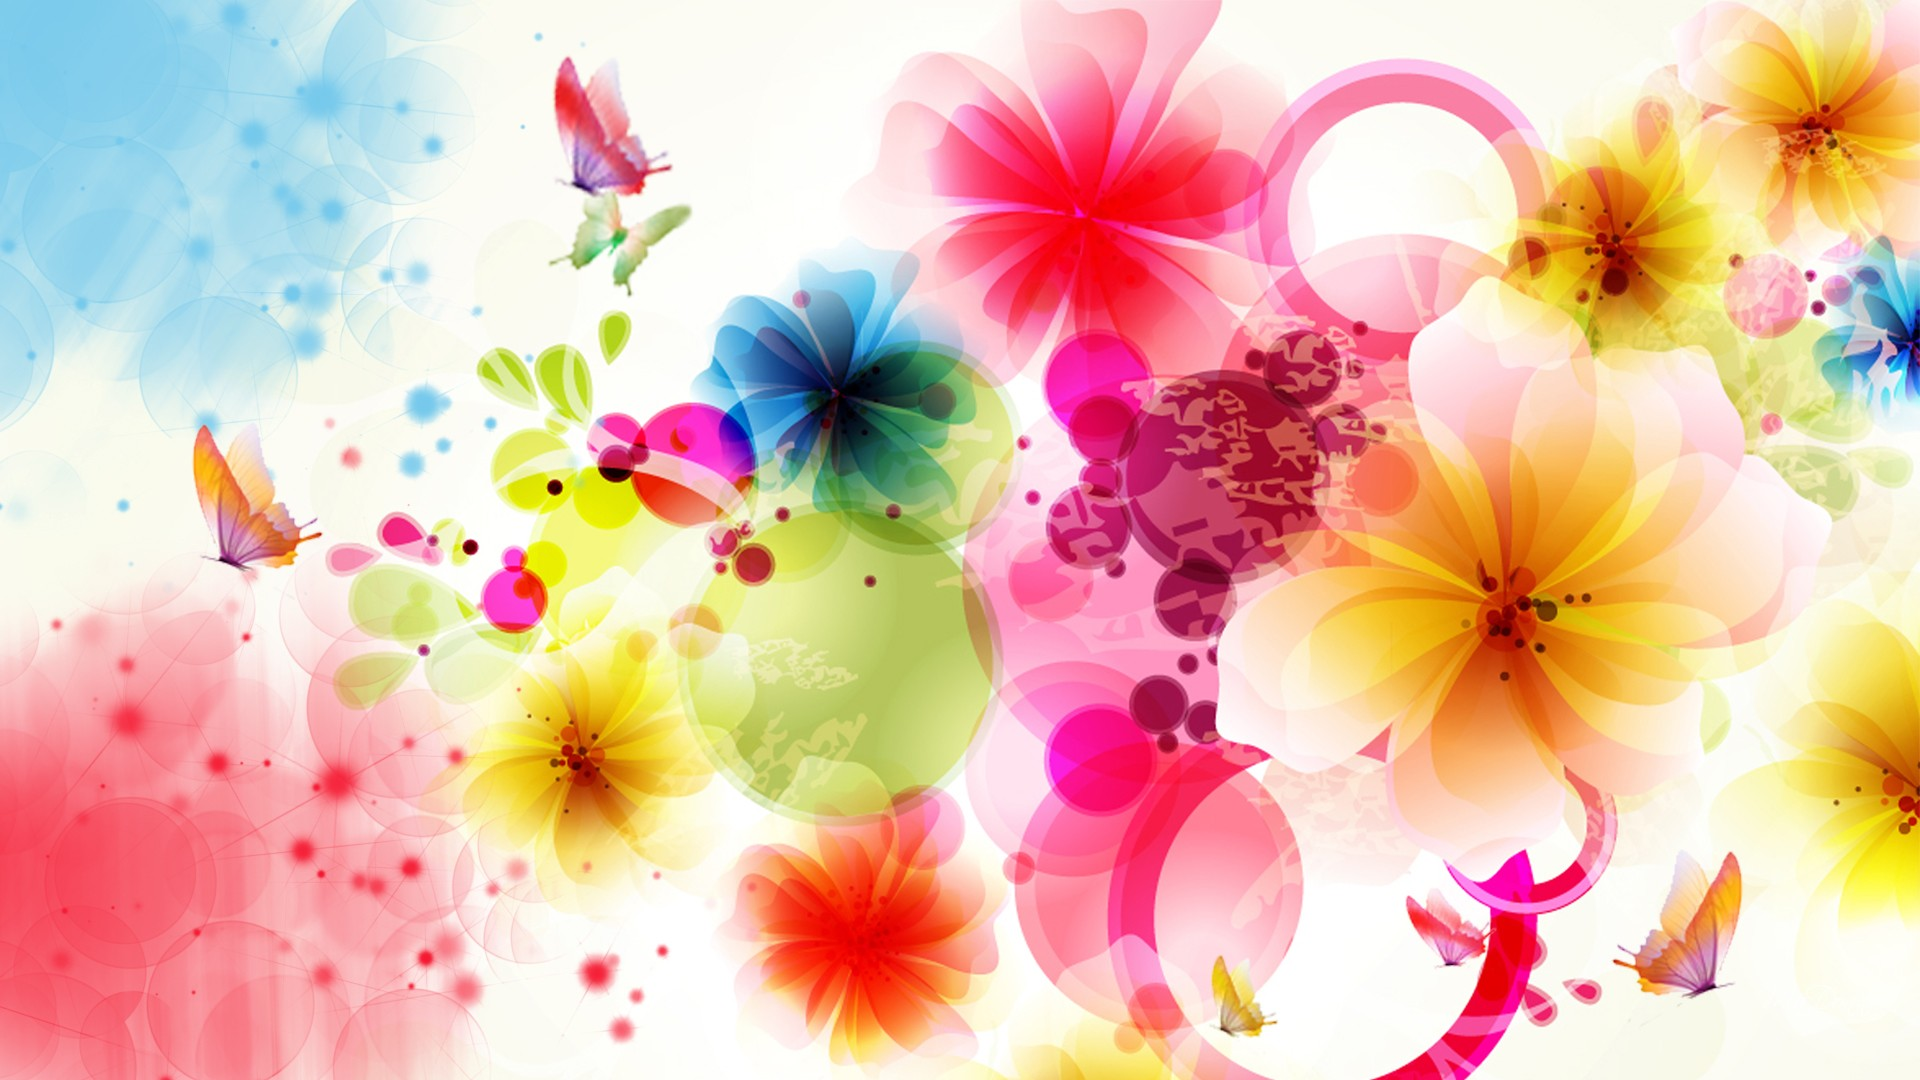 abstract flower wallpaper high definition high quality